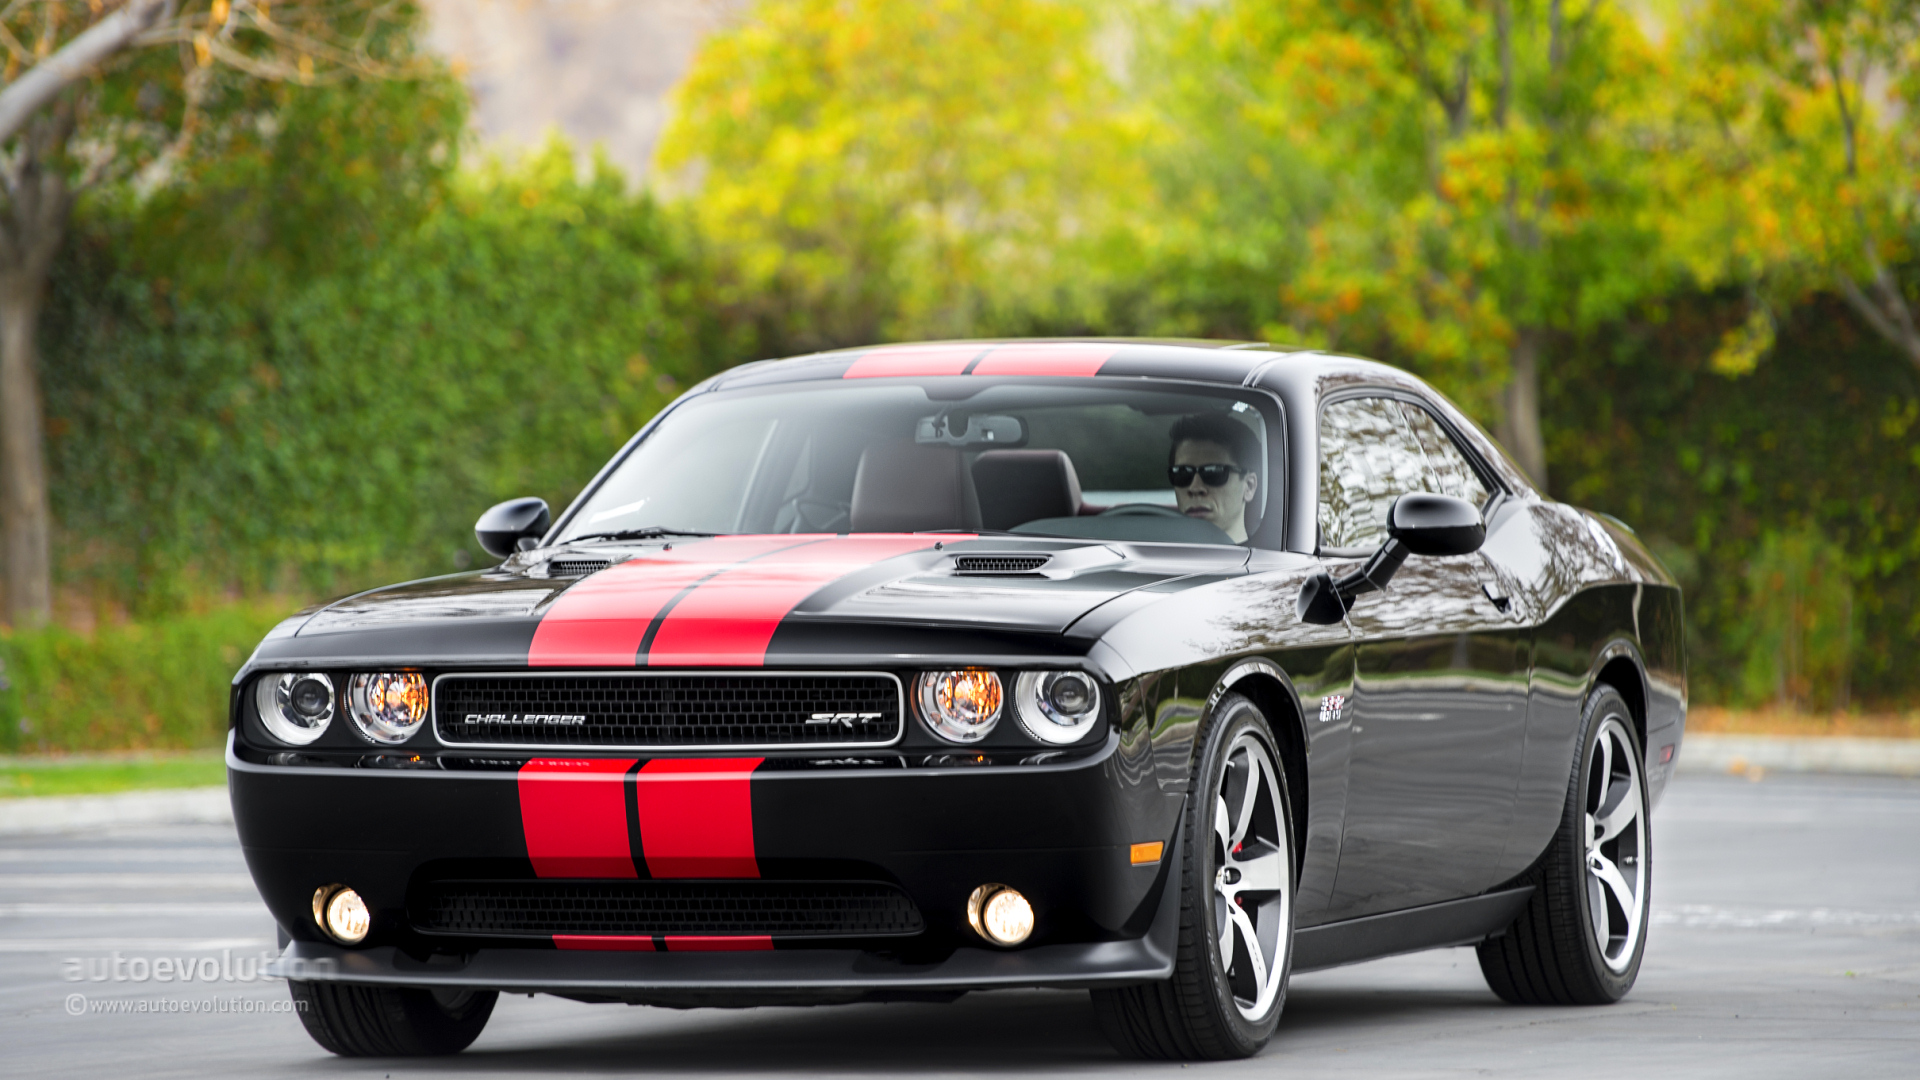 2014 dodge challenger srt8 392 specs car pictures